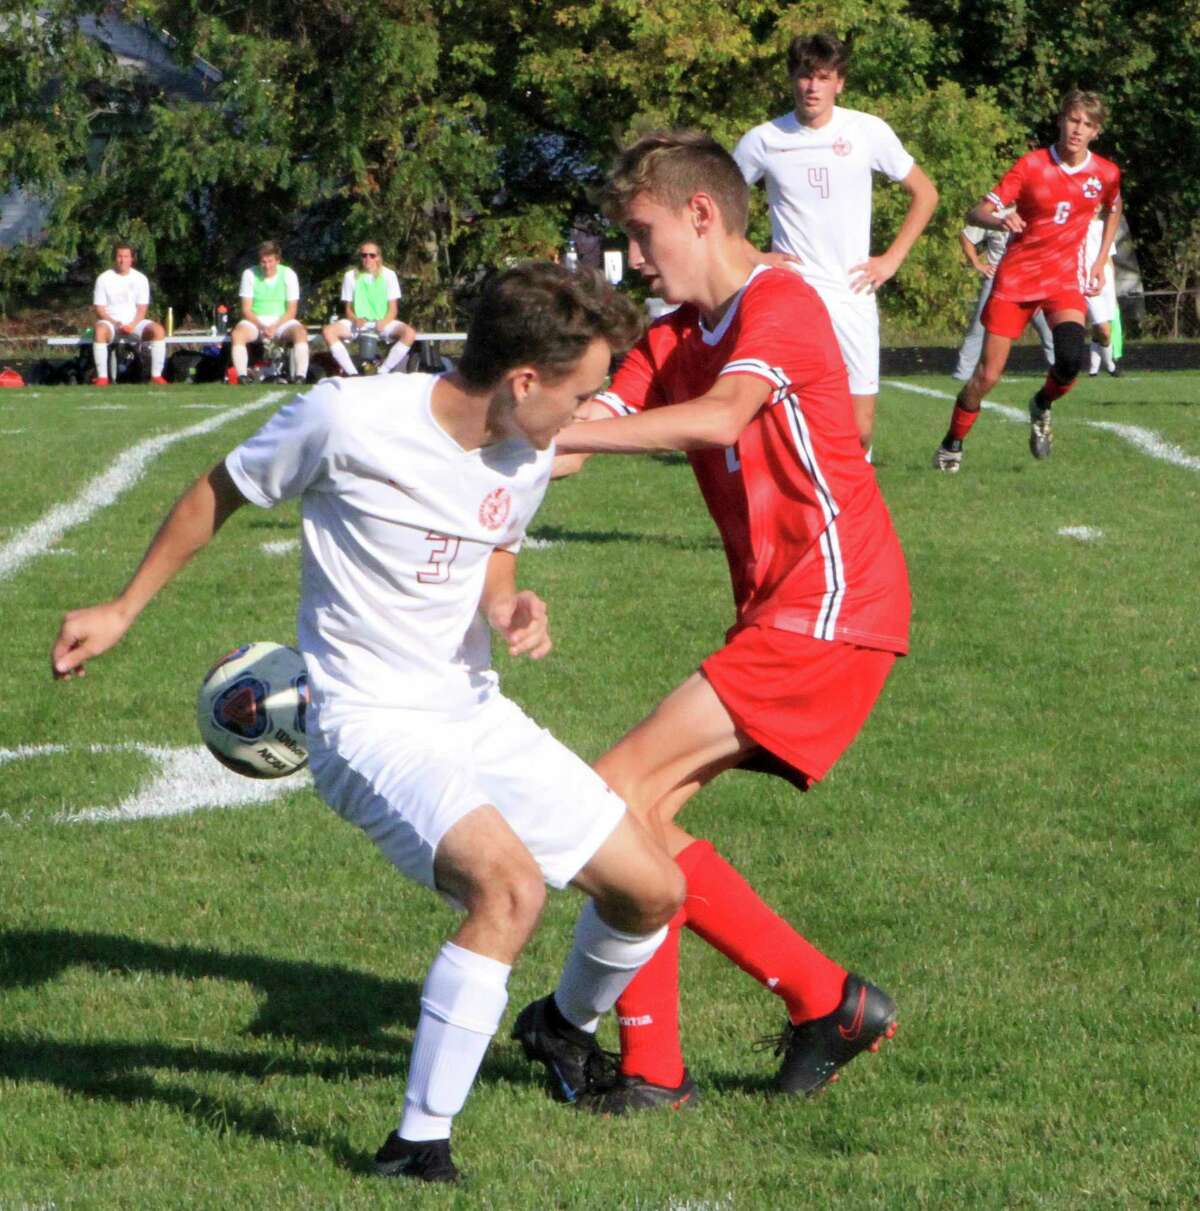 Big Rapids senior Ethan Fuller (left) and Reed City sophomore Isaac Clementshaw battle for possession of the ball during Thursday afternoon's soccer match. (Pioneer photo/Joe Judd)